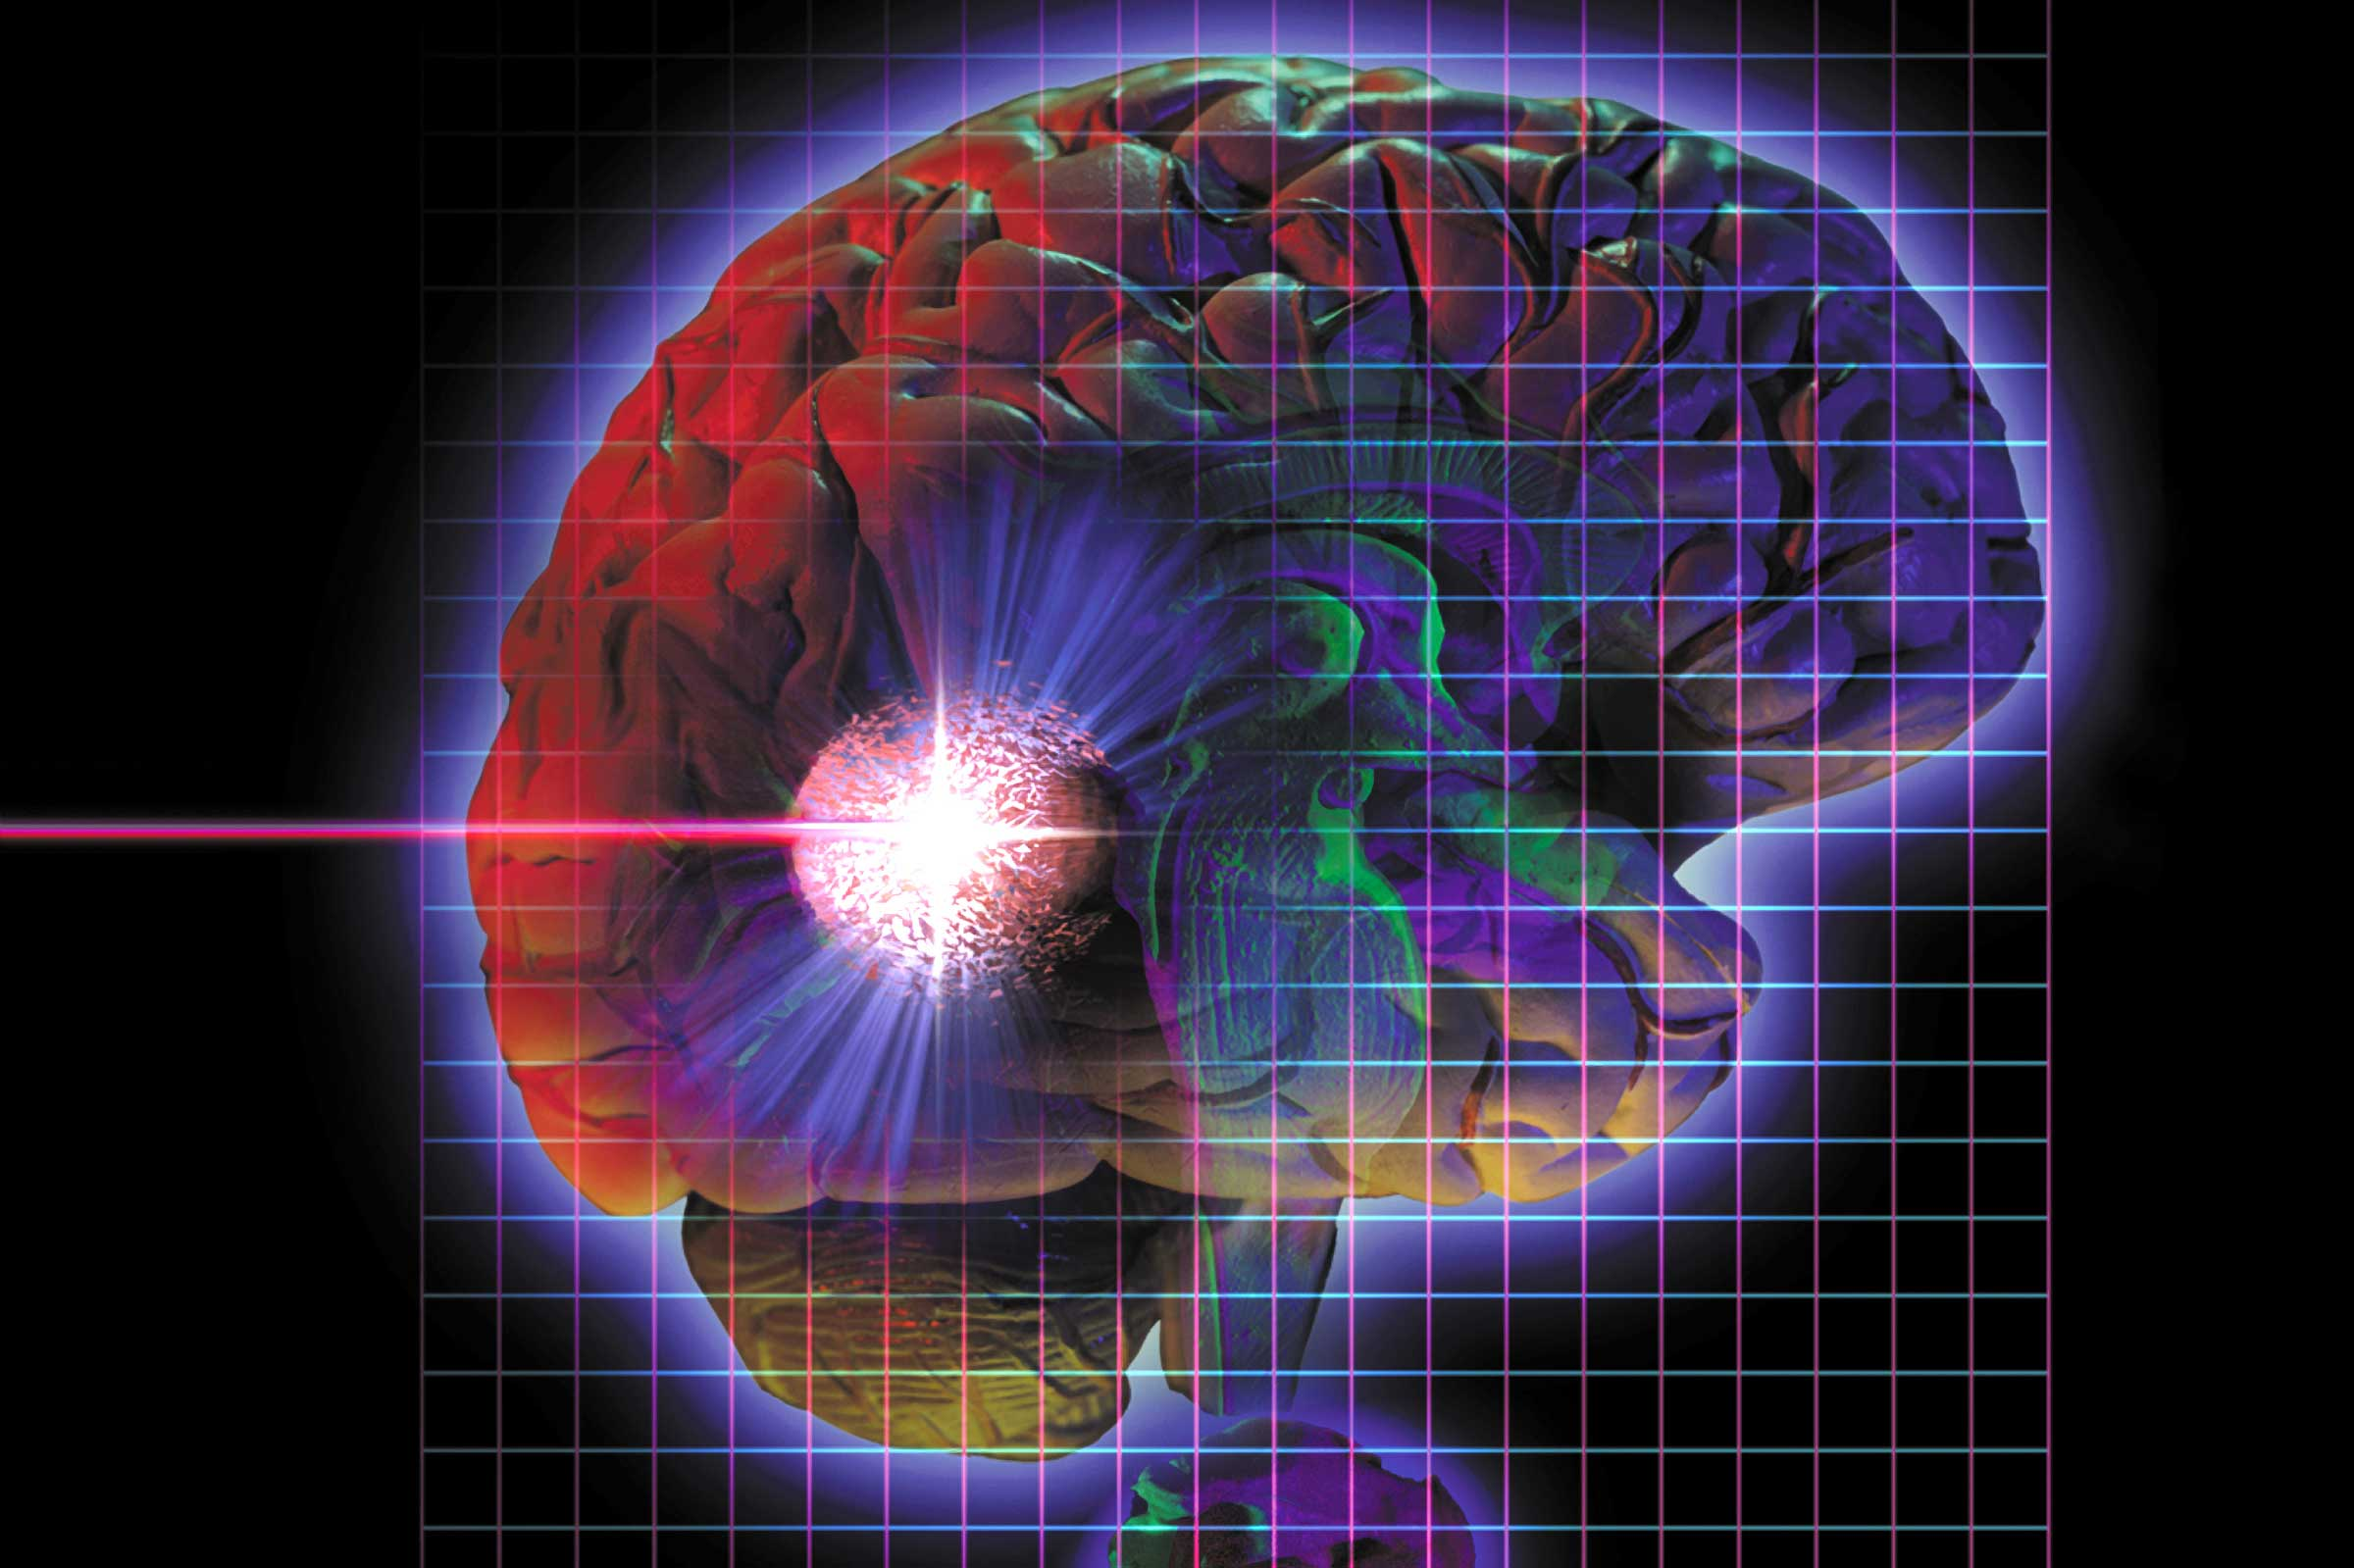 brain tumor research papers Battling brain cancer 17 oct 2016 the resulting paper was named by the clinical research forum as one of the top 10 papers in clinical and with brain tumor.